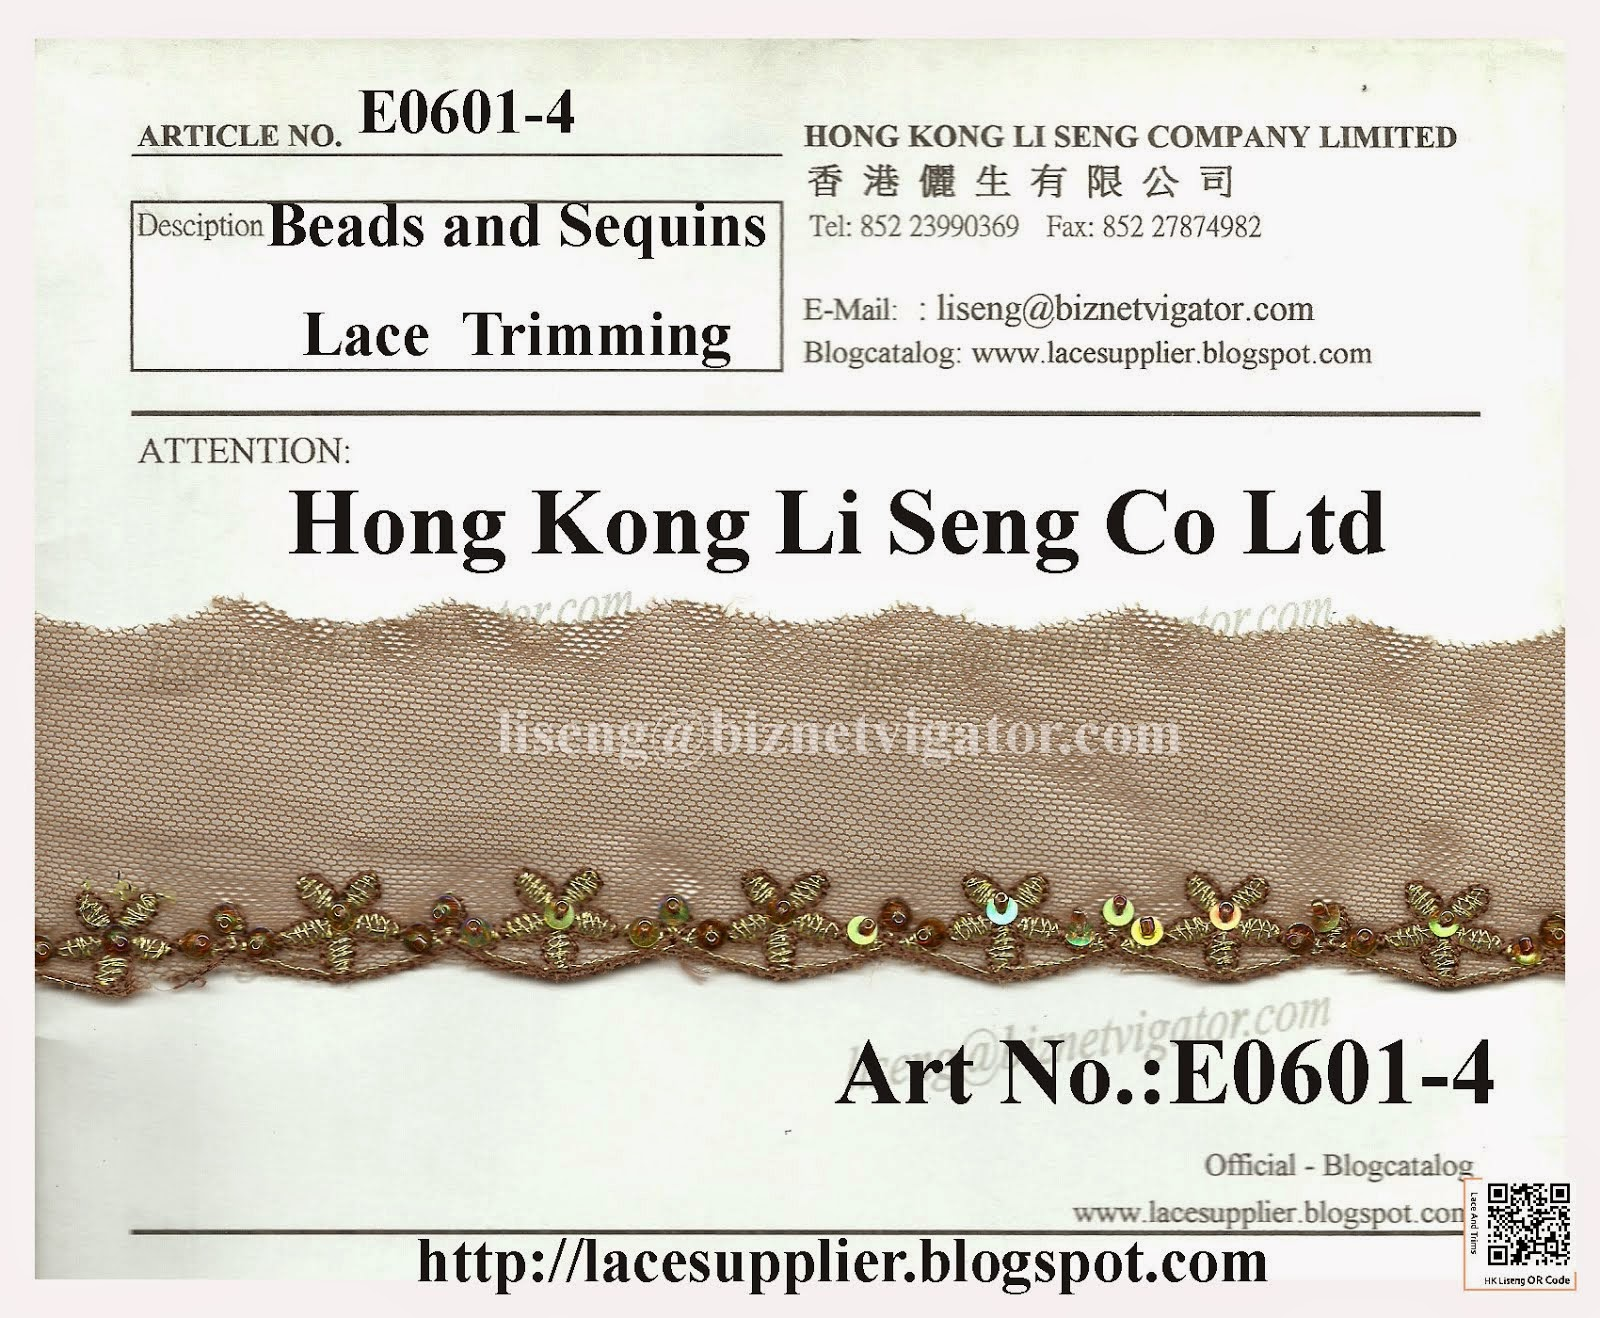 Beads and Sequins Lace Trims Supplier - Hong Kong Li Seng Co Ltd